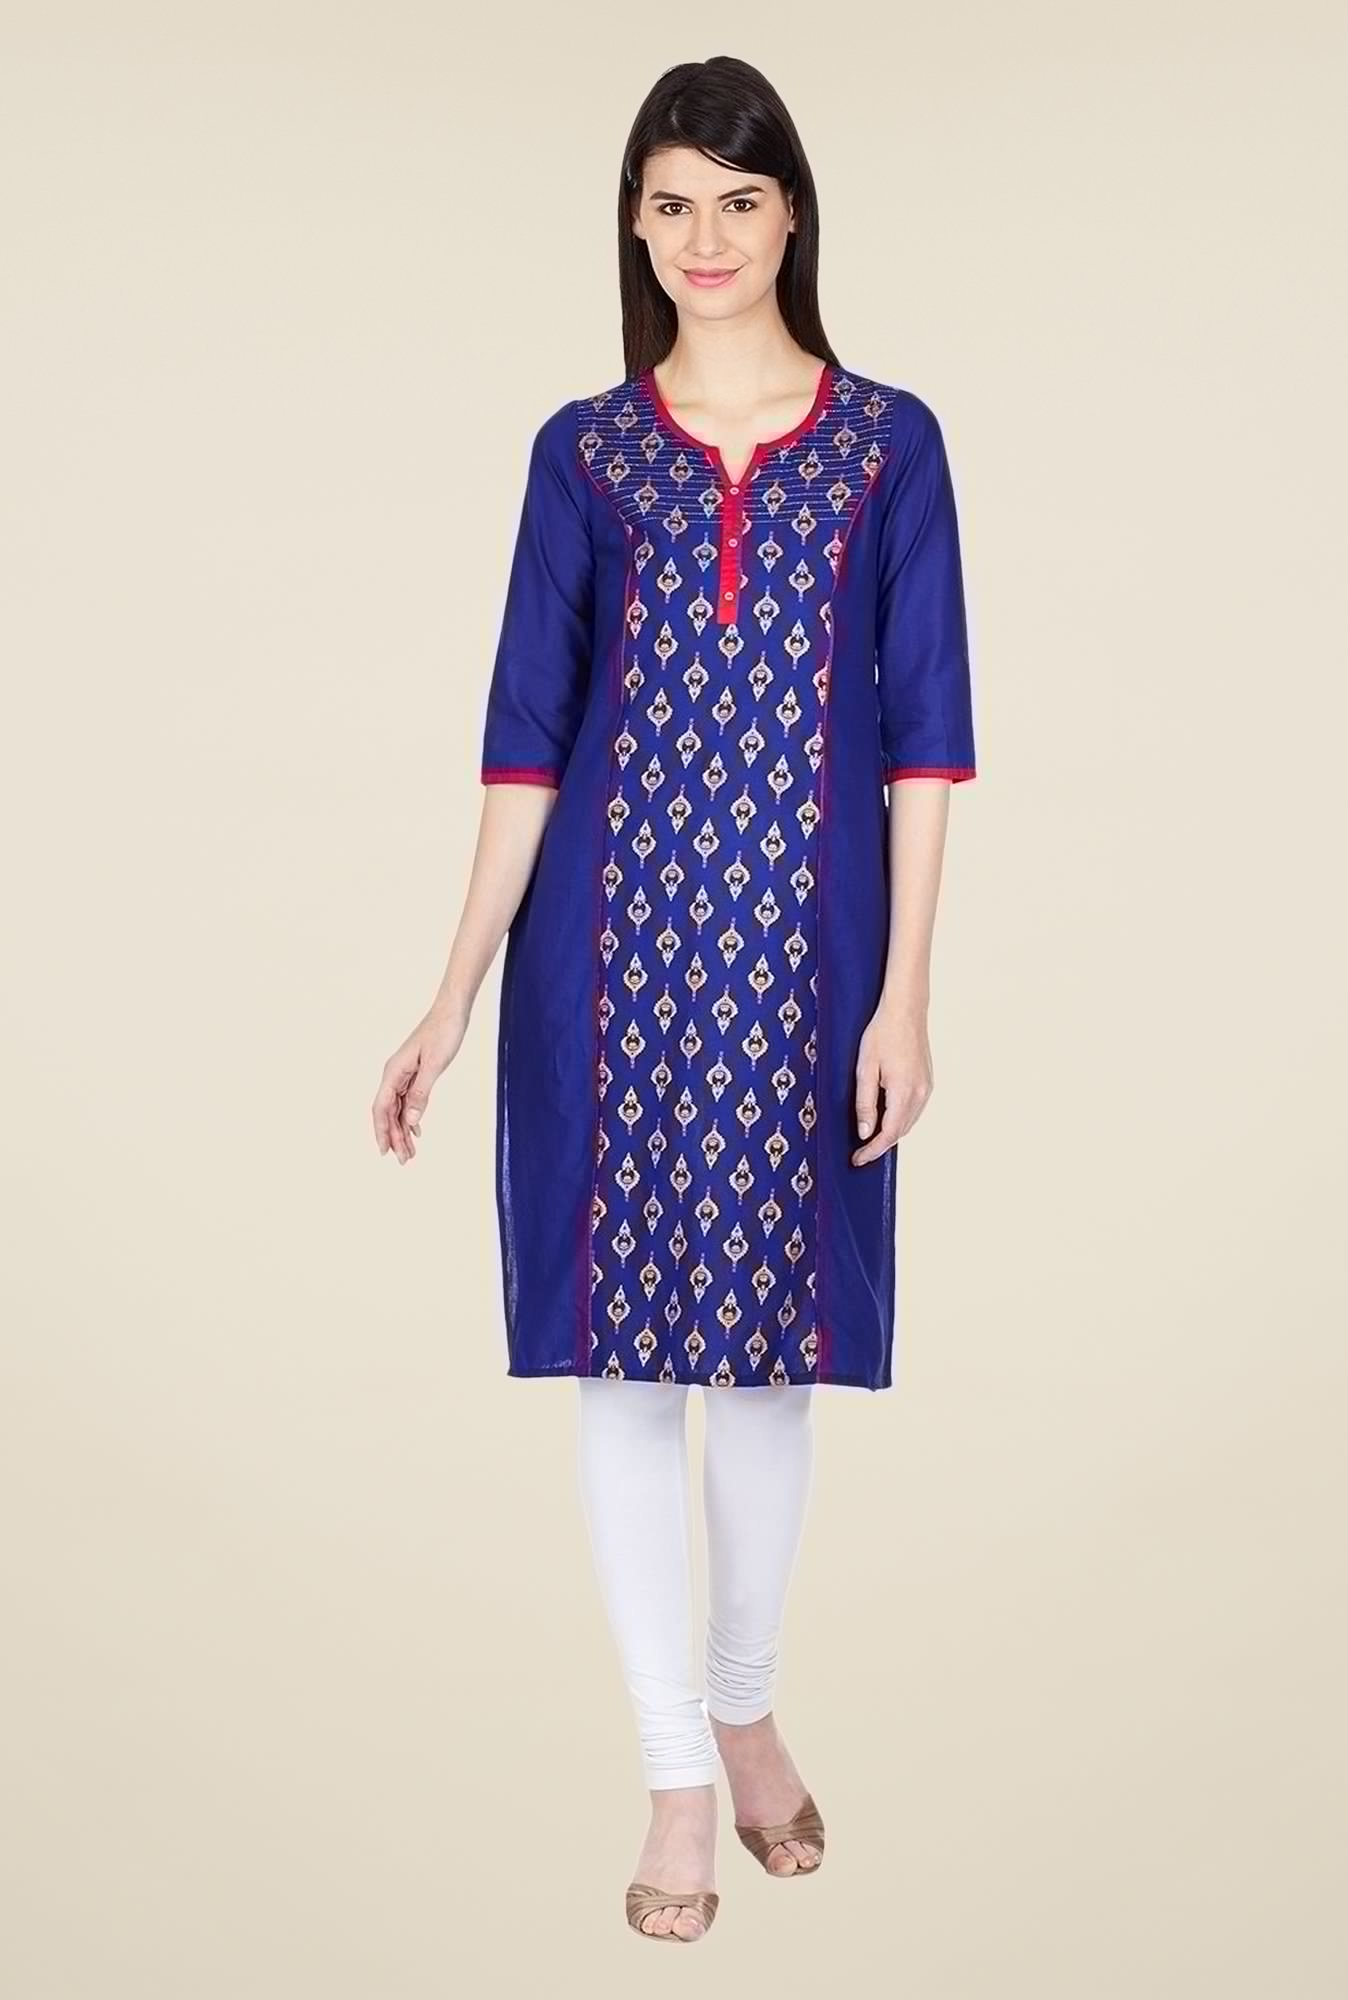 Aurelia Blue Bandhani Printed Cotton Kurta